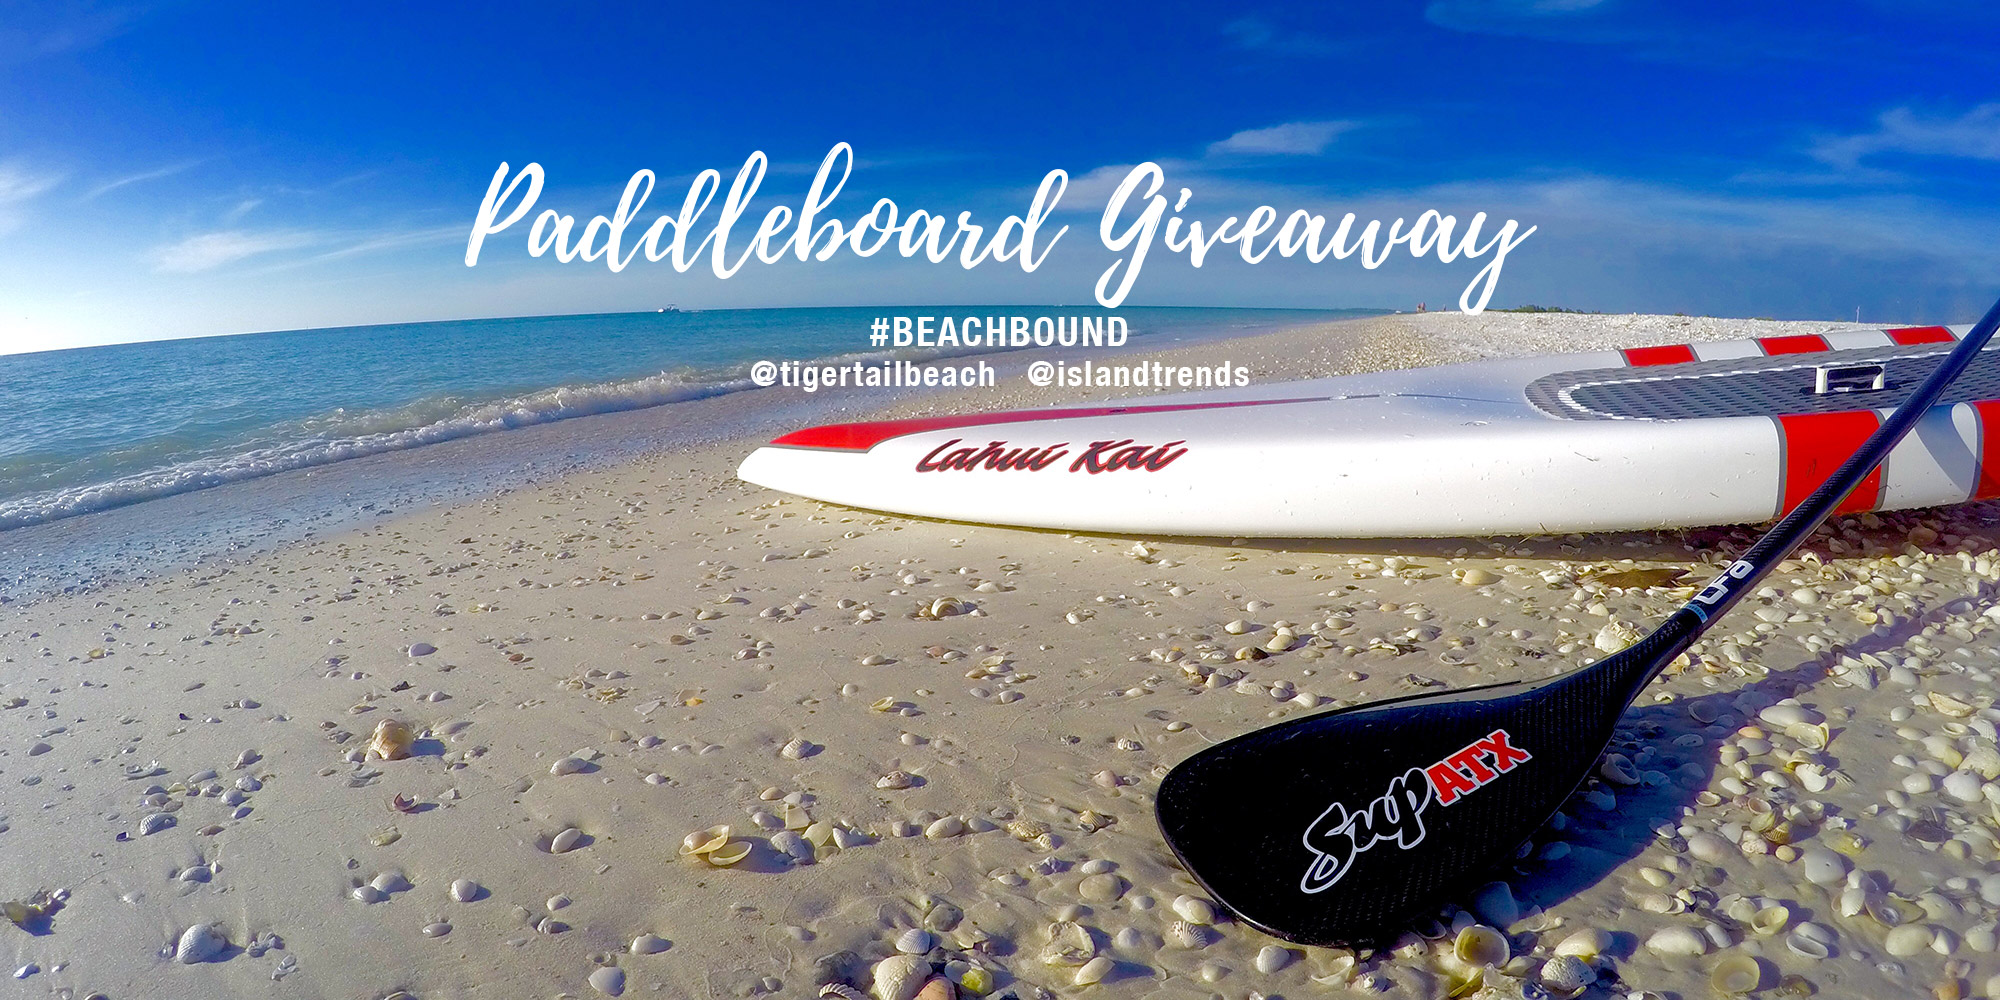 Marco Island Paddleboard Giveaway